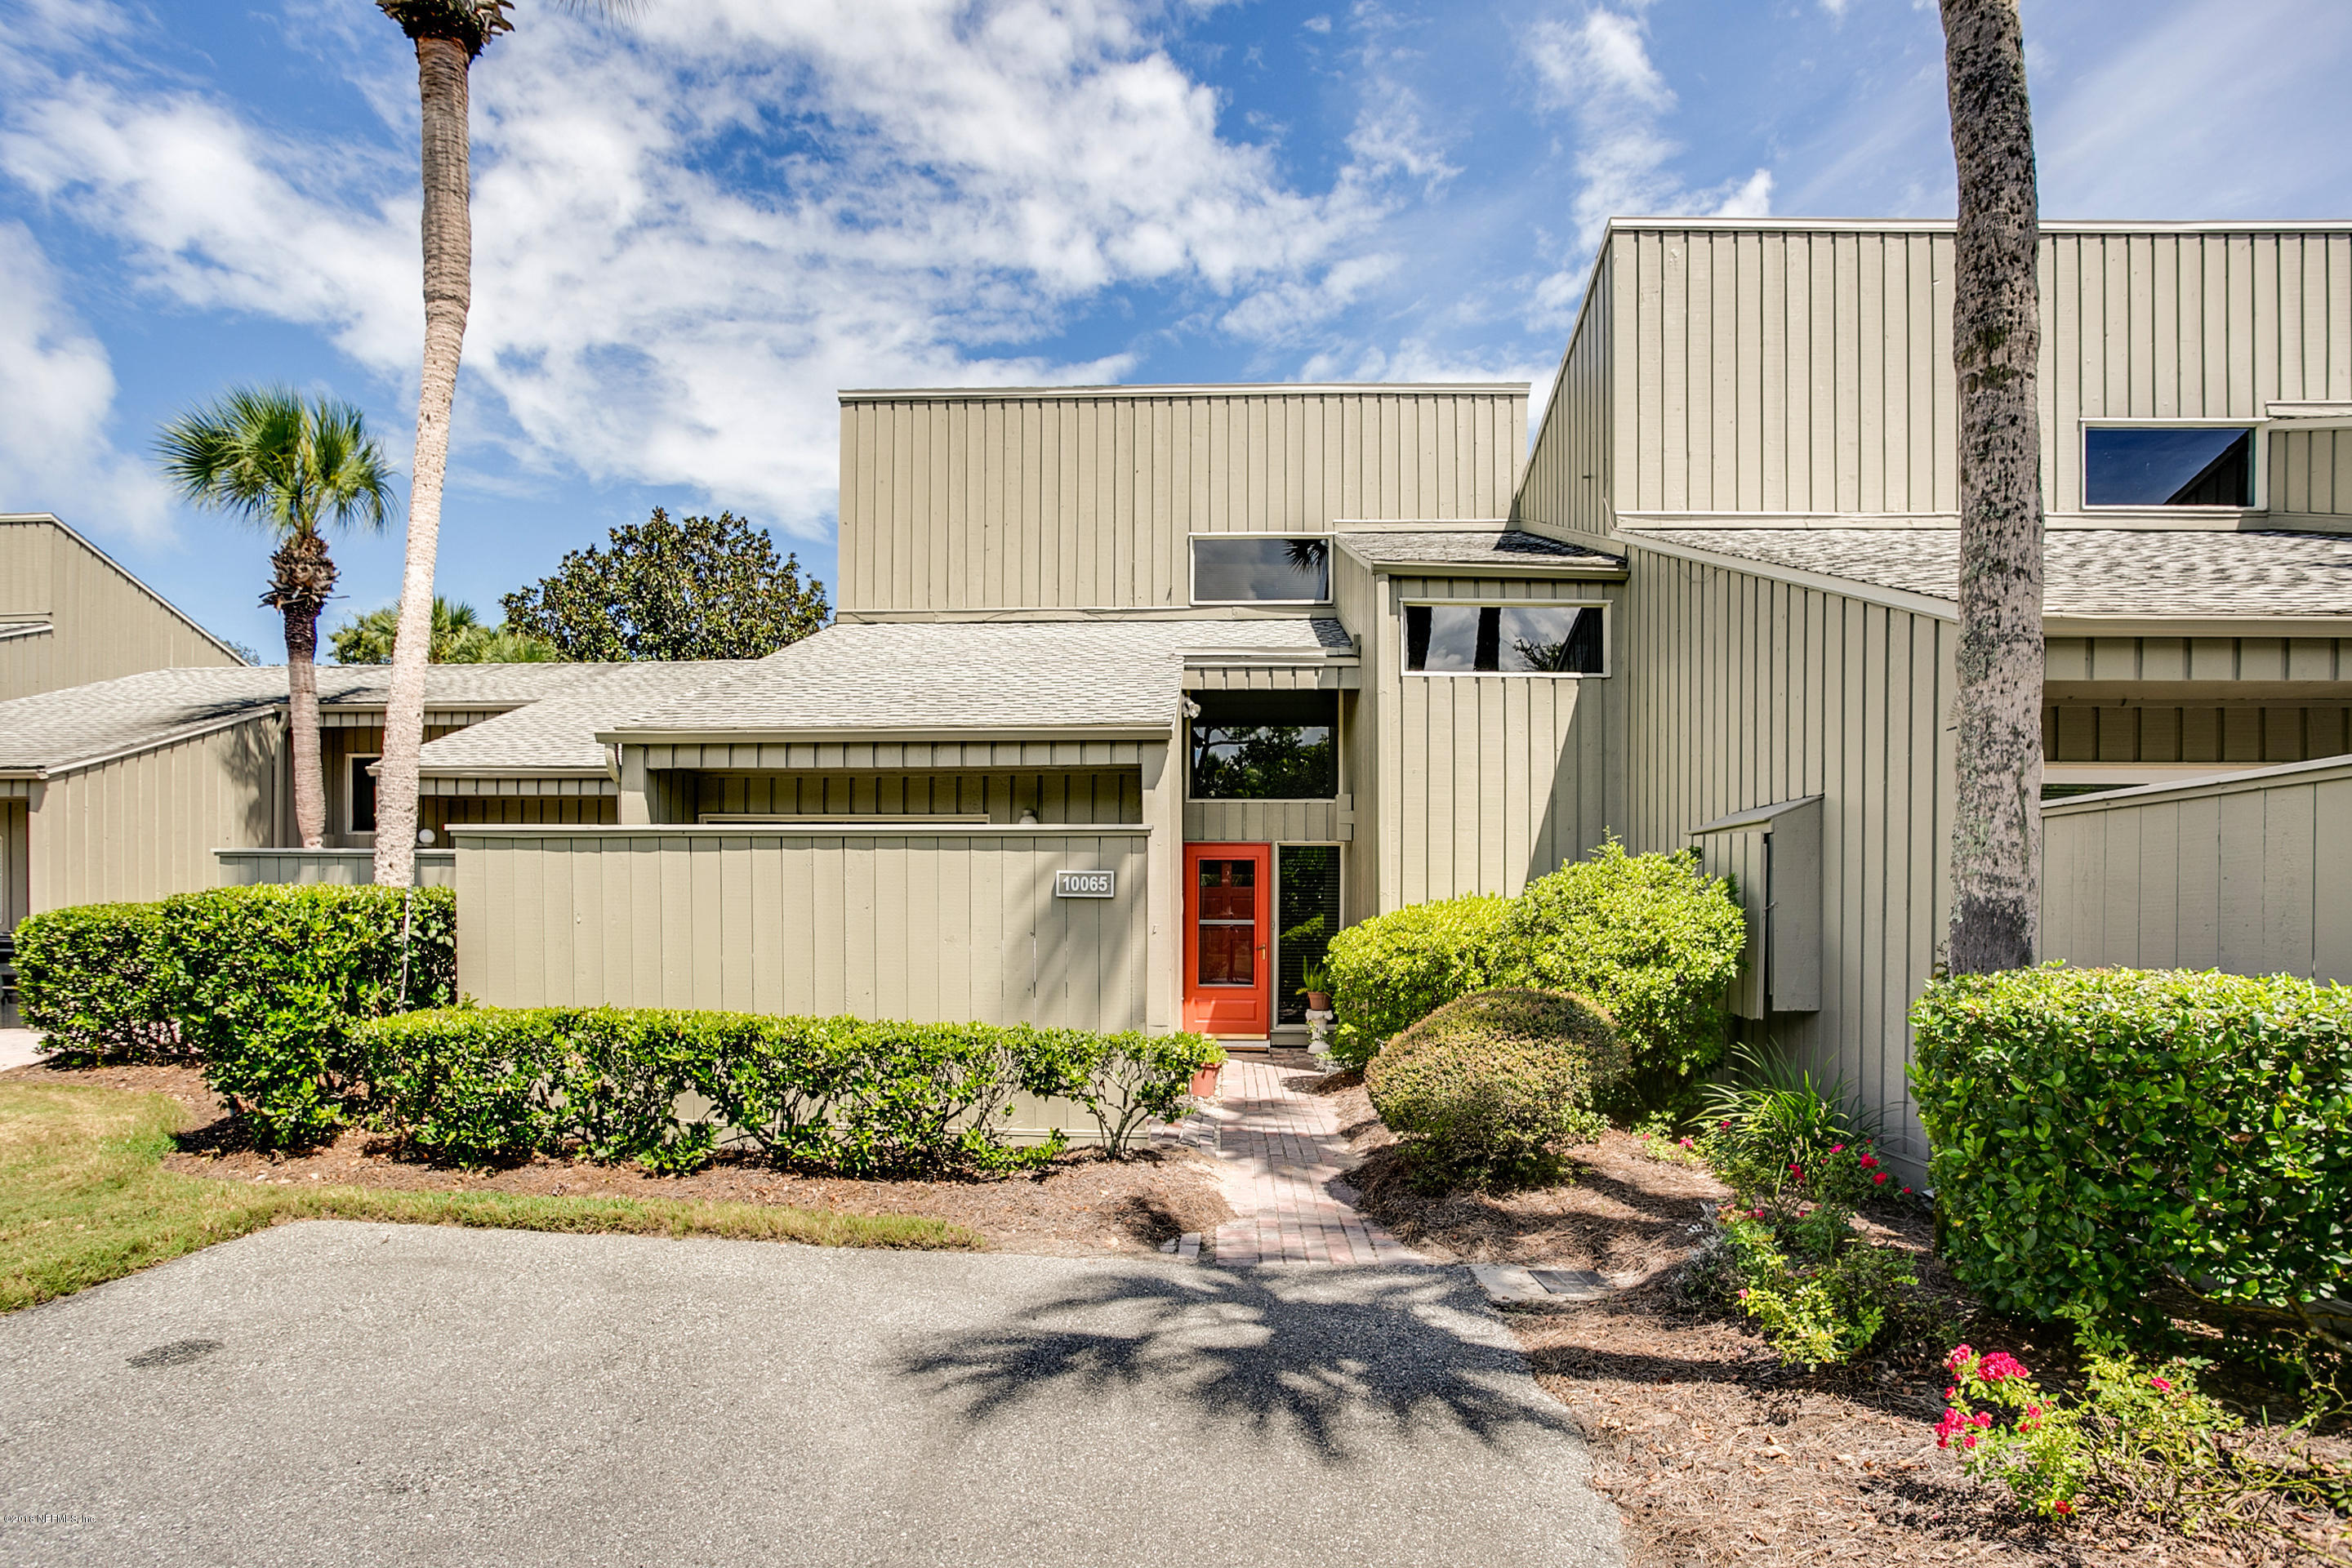 10065 SAWGRASS, PONTE VEDRA BEACH, FLORIDA 32082, 2 Bedrooms Bedrooms, ,2 BathroomsBathrooms,Residential - condos/townhomes,For sale,SAWGRASS,957378